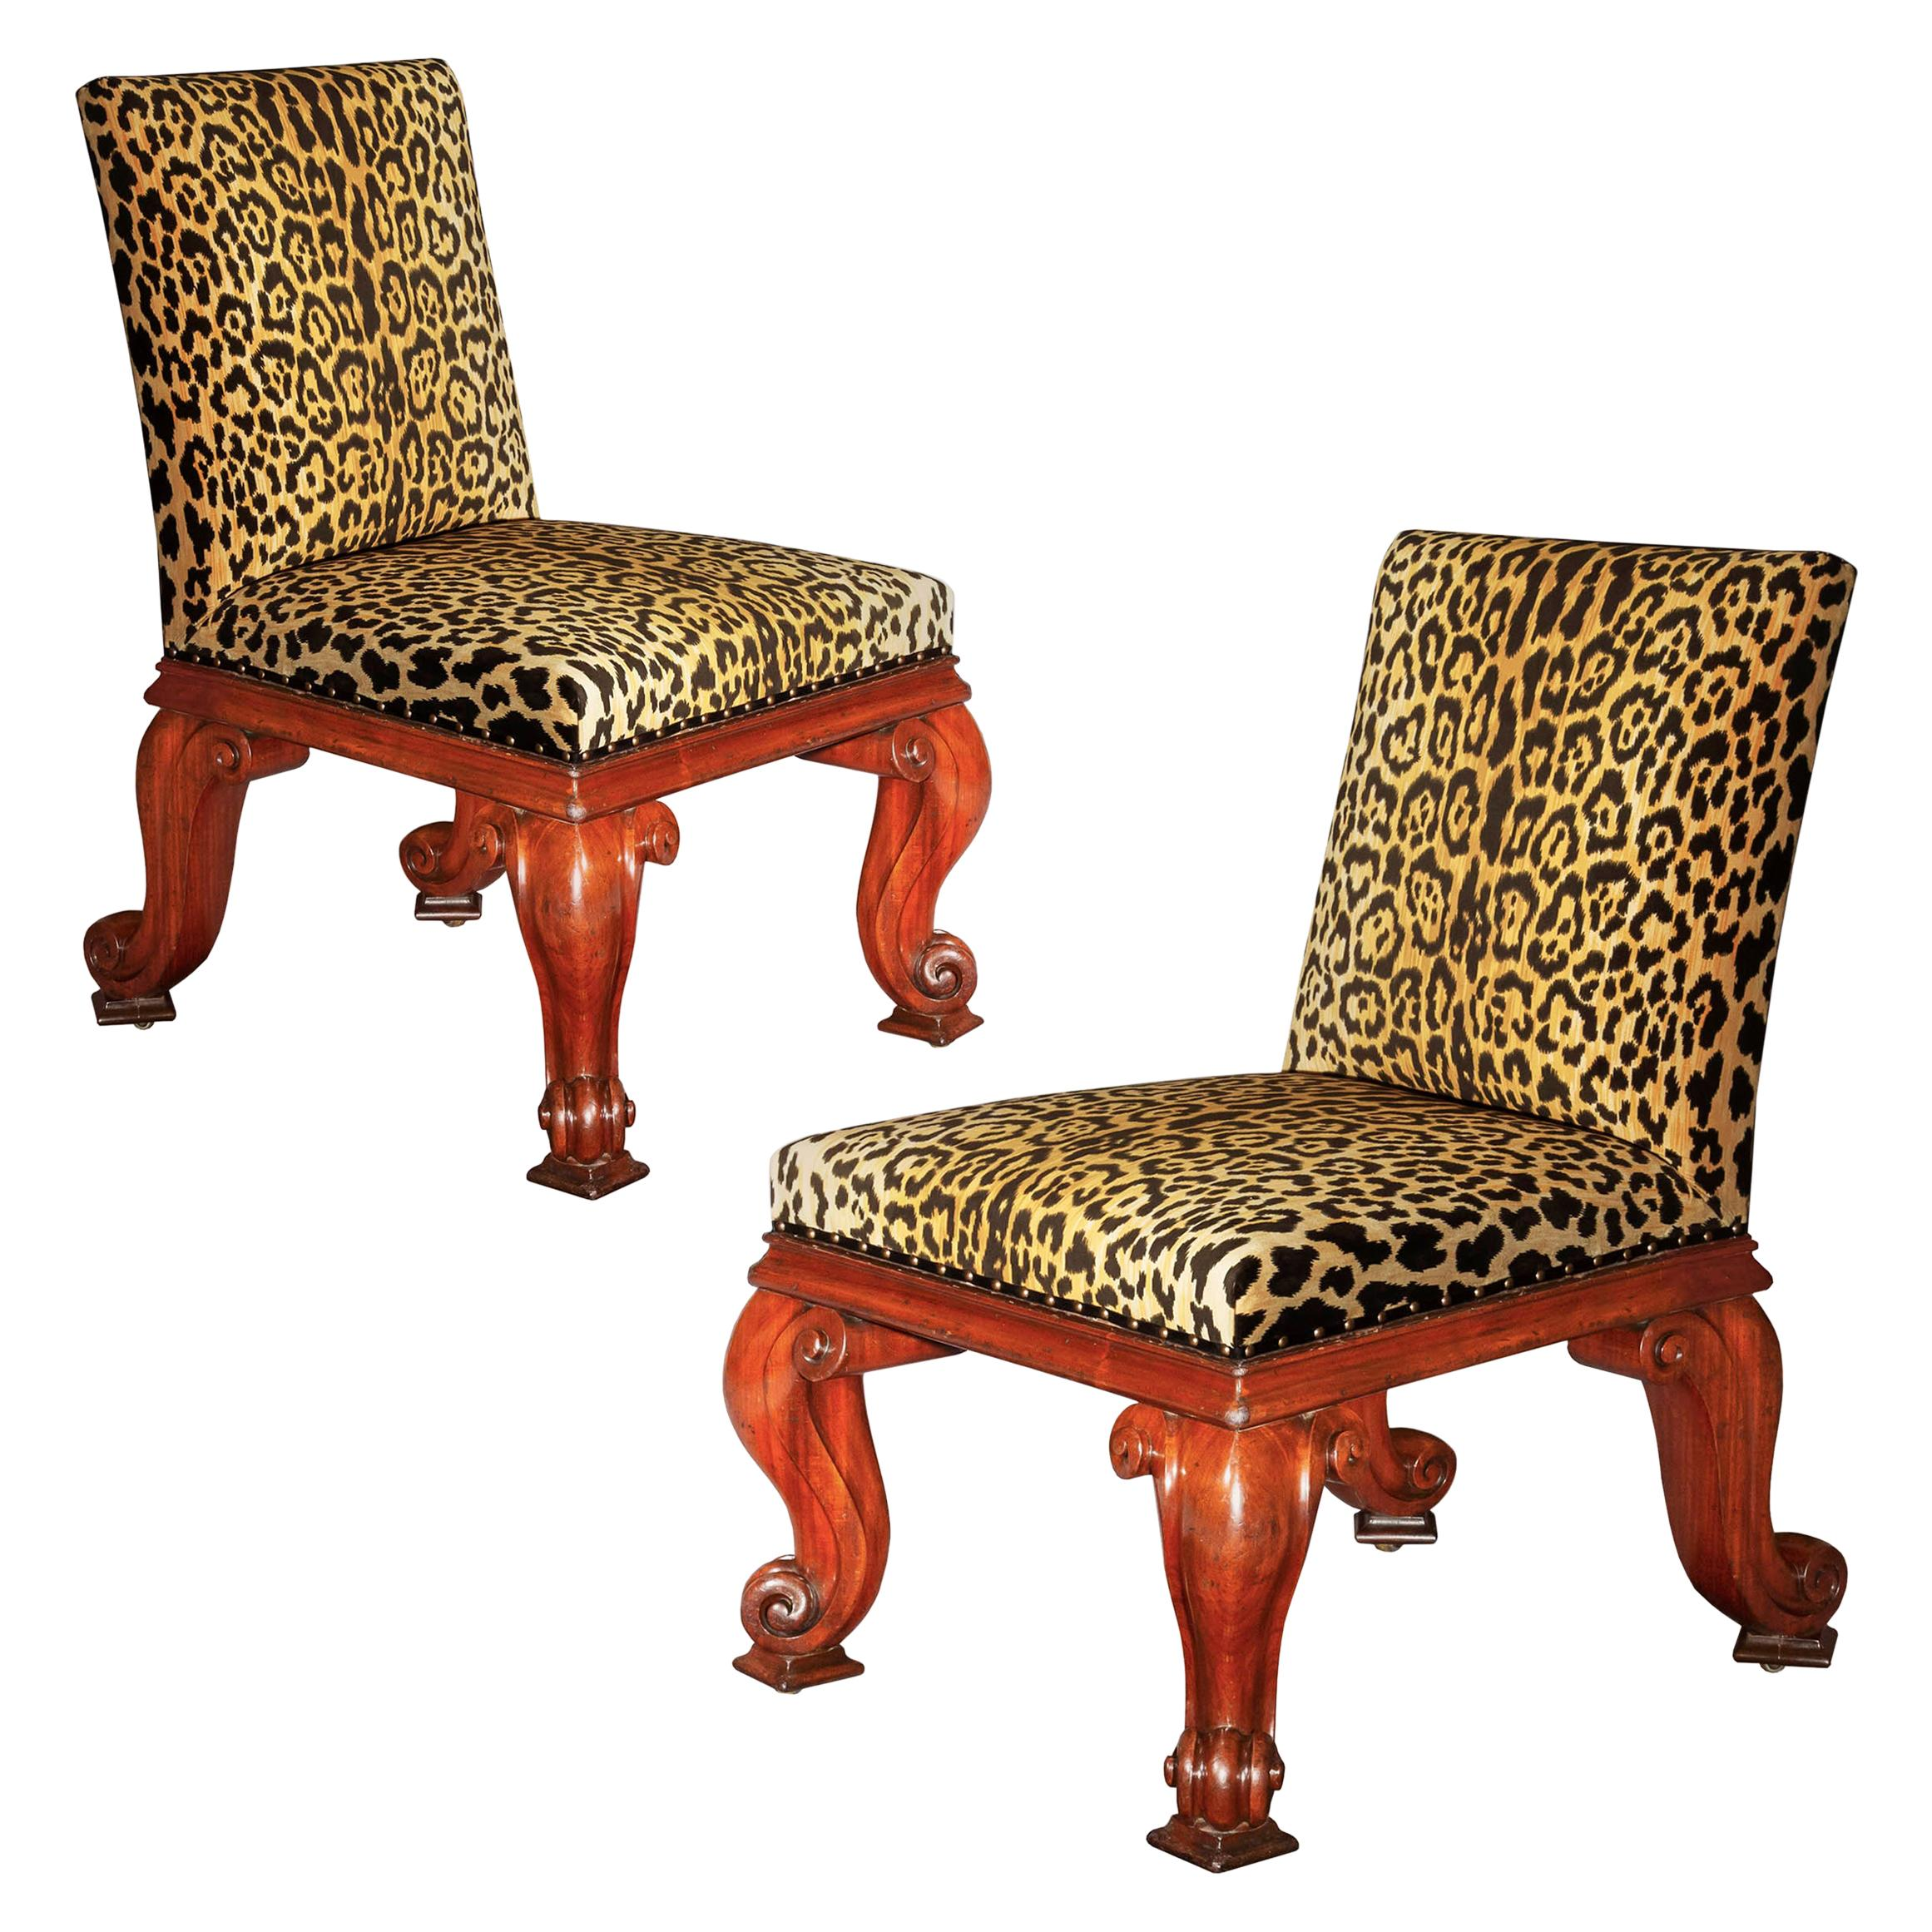 Antique Pair of Regency Chairs by Gillows